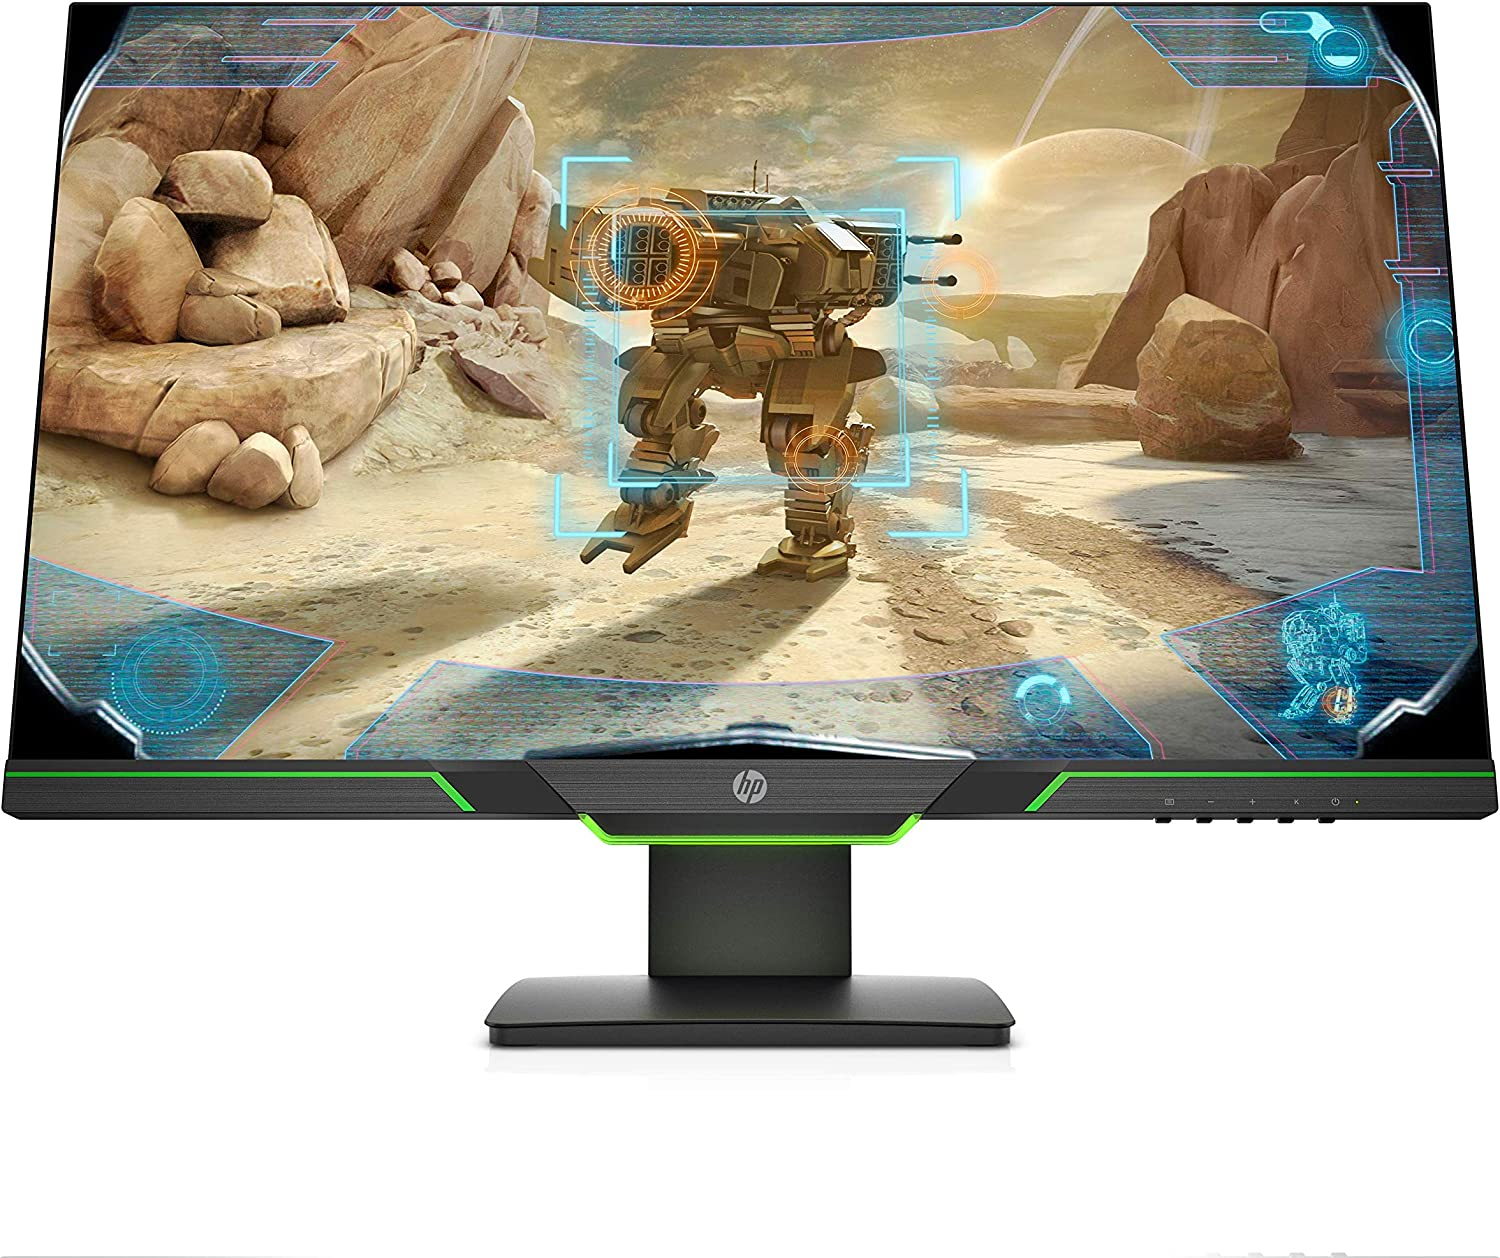 HP 27x 27-inch Full HD 1080p 144Hz 1ms Gaming Monitor with AMD FreeSync, Ambient Lighting, Height/Tilt Adjustable, and Narrow Bezel (3WL52AA#ABA)